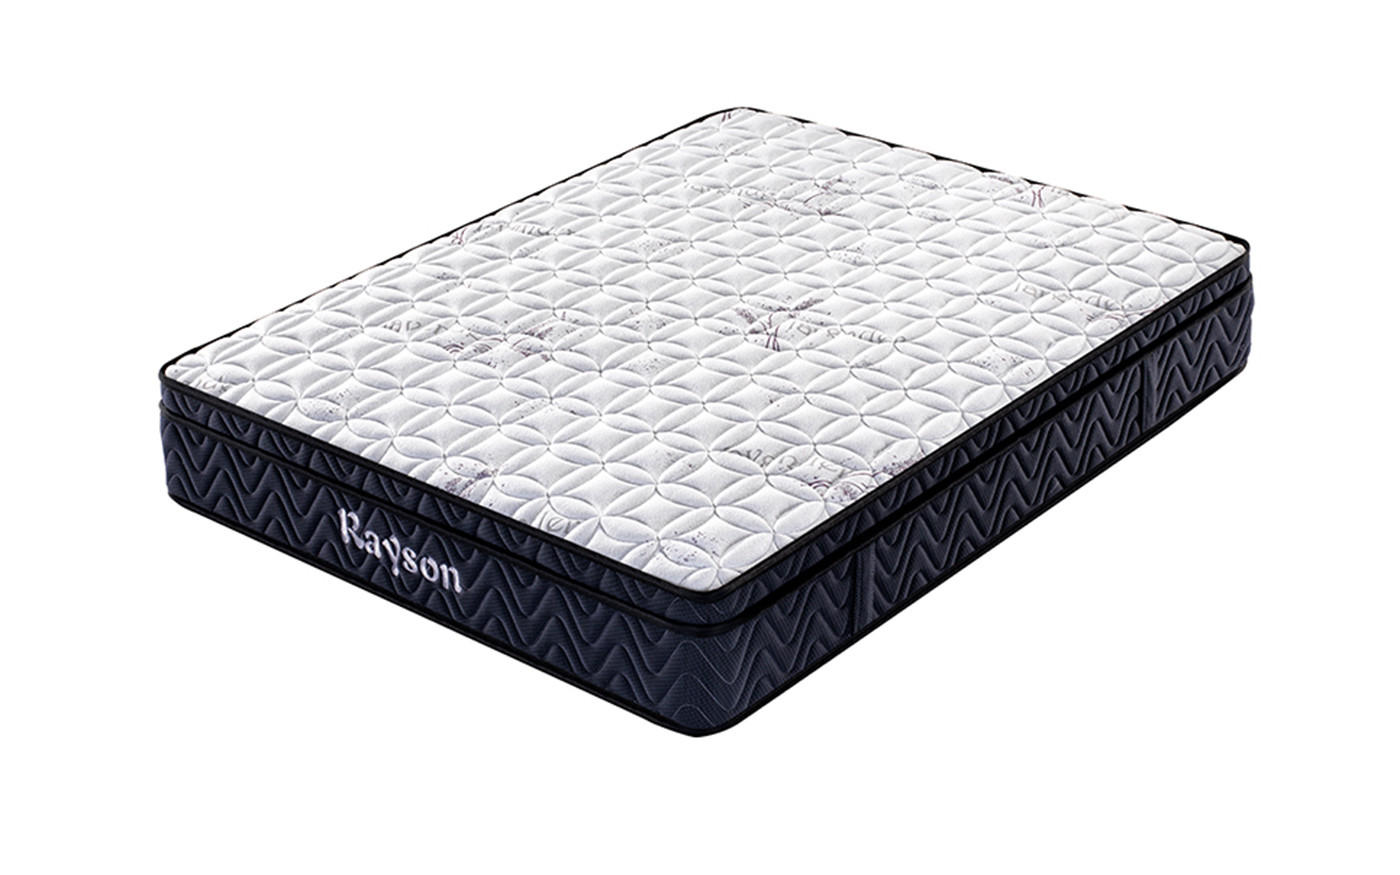 Synwin top quality hotel type mattress popular at discount